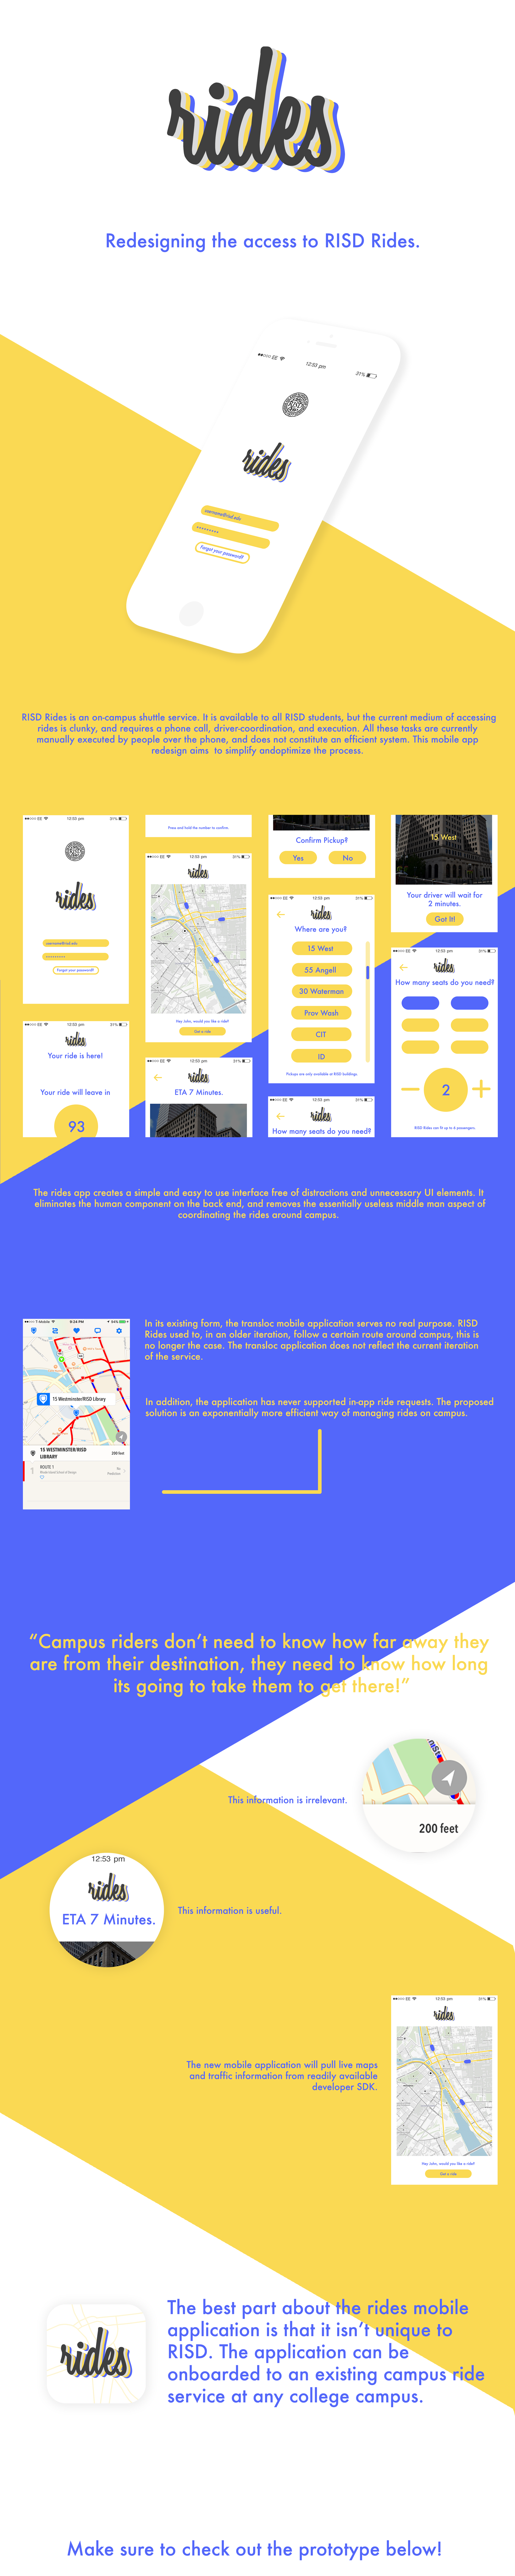 Behance-Project.png